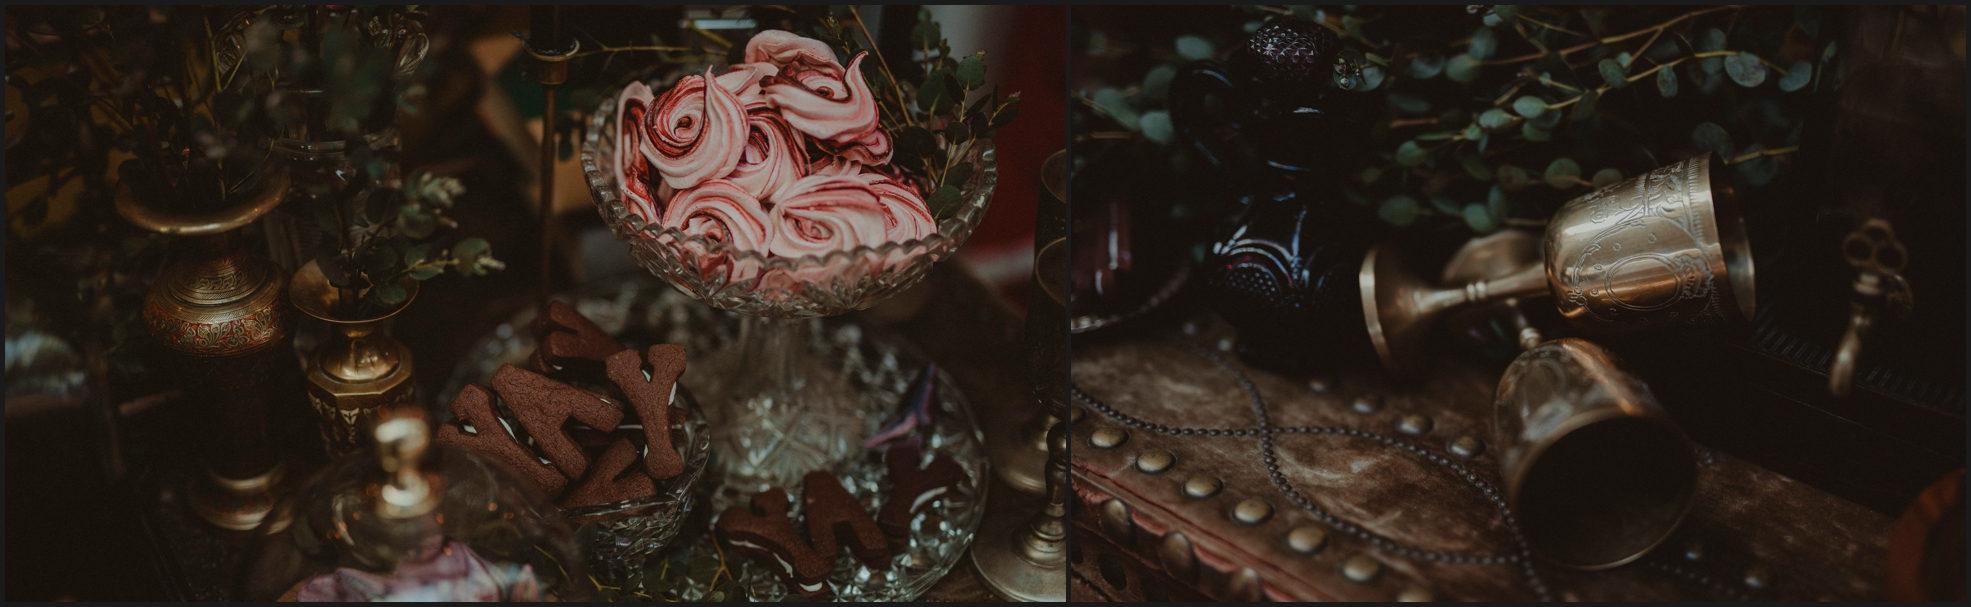 wedding details, sweets, gothic, vintage